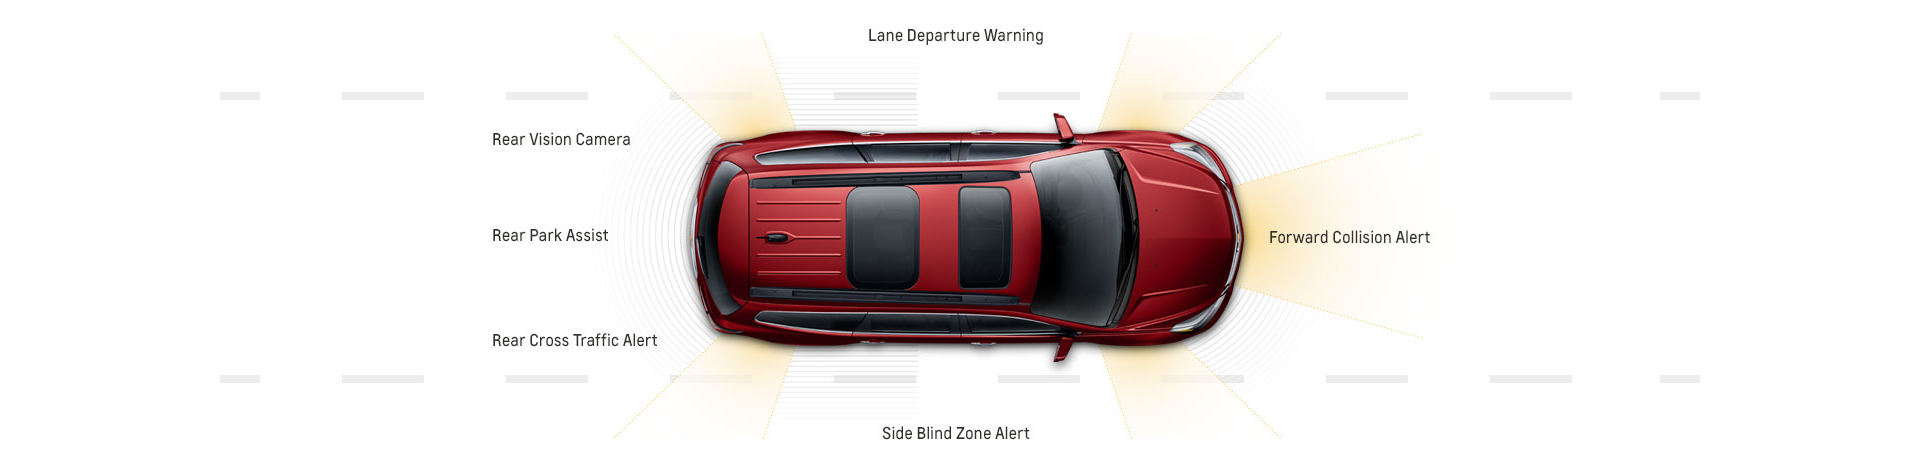 A top-down view of a red 2017 Chevy Traverse showing simulated safety features in all directions.